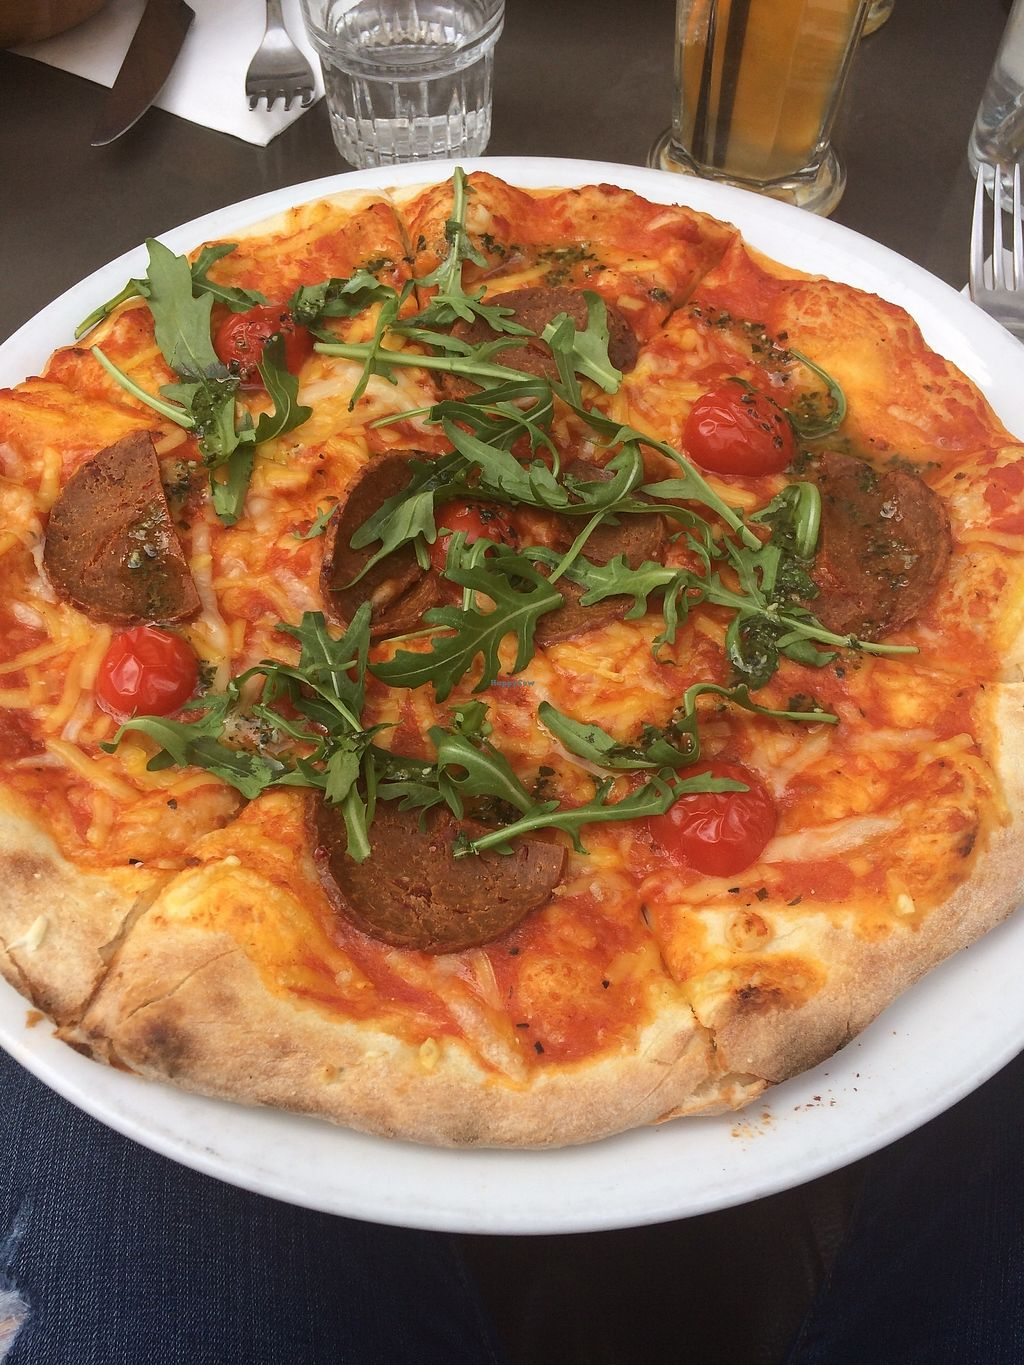 "Photo of Brasserie 2eme Art  by <a href=""/members/profile/sabrinajh"">sabrinajh</a> <br/>Chorizo pizza with ""chorizo,"" cherry tomatoes, basil, and pesto! Best pizza I've ever had. House-made cheese.  <br/> April 13, 2018  - <a href='/contact/abuse/image/73690/385268'>Report</a>"